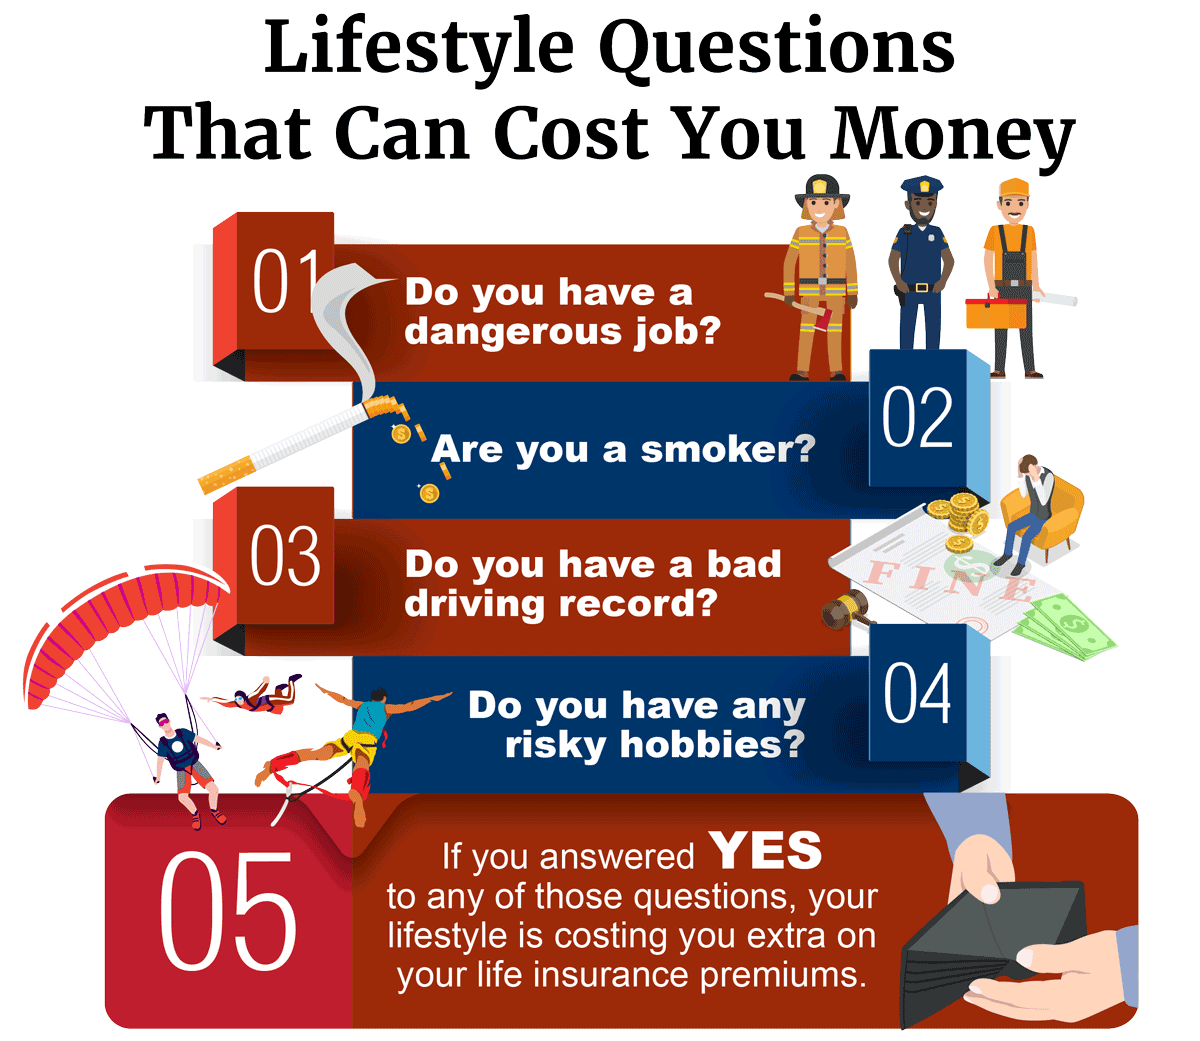 Lifestyle Questions That Can Cost You Money